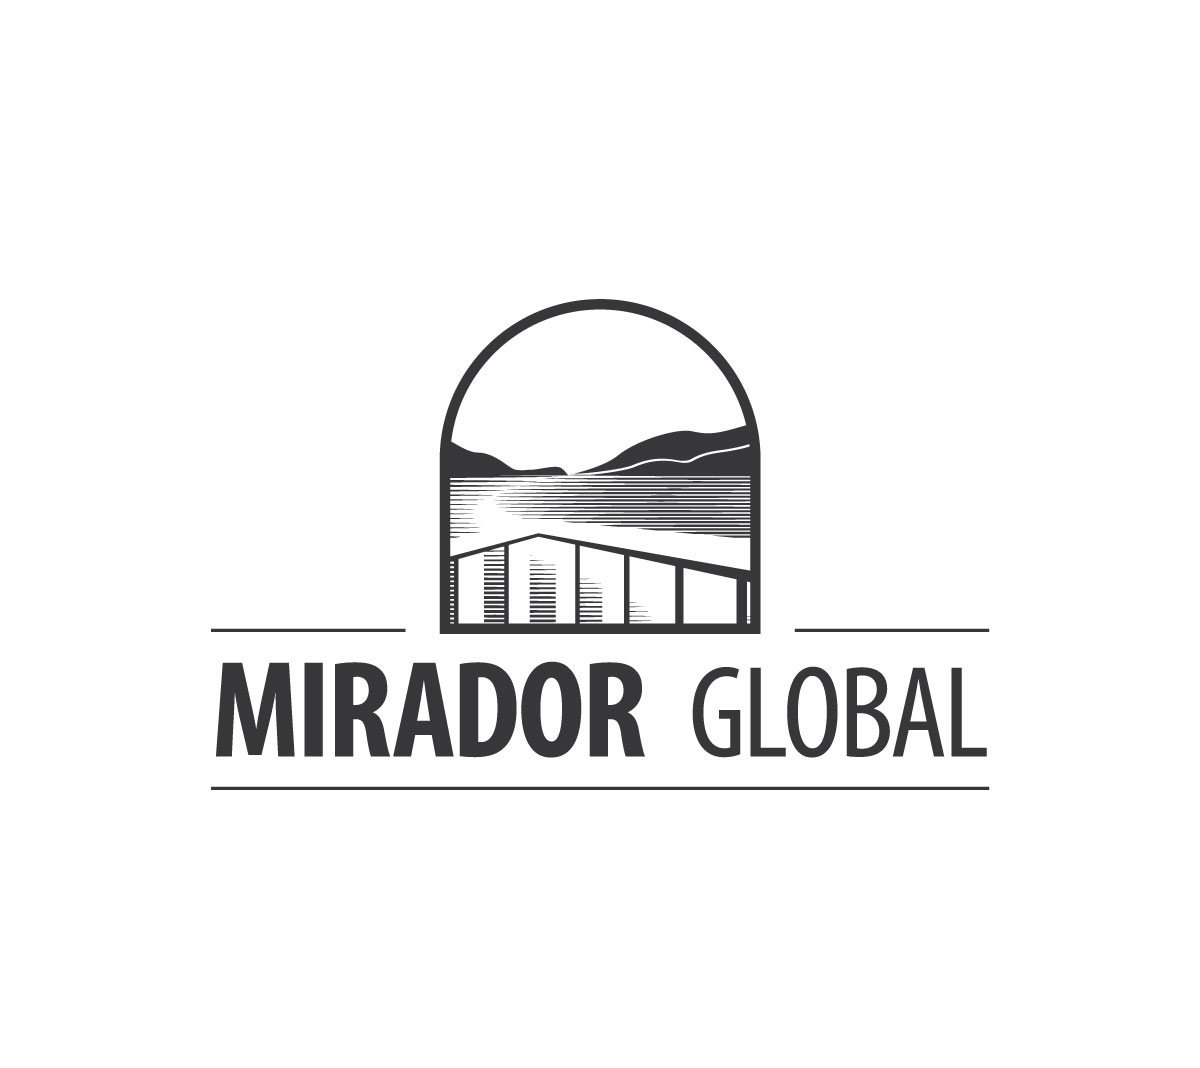 Create a new logo and website for our Mirador.Global life planning and resources company